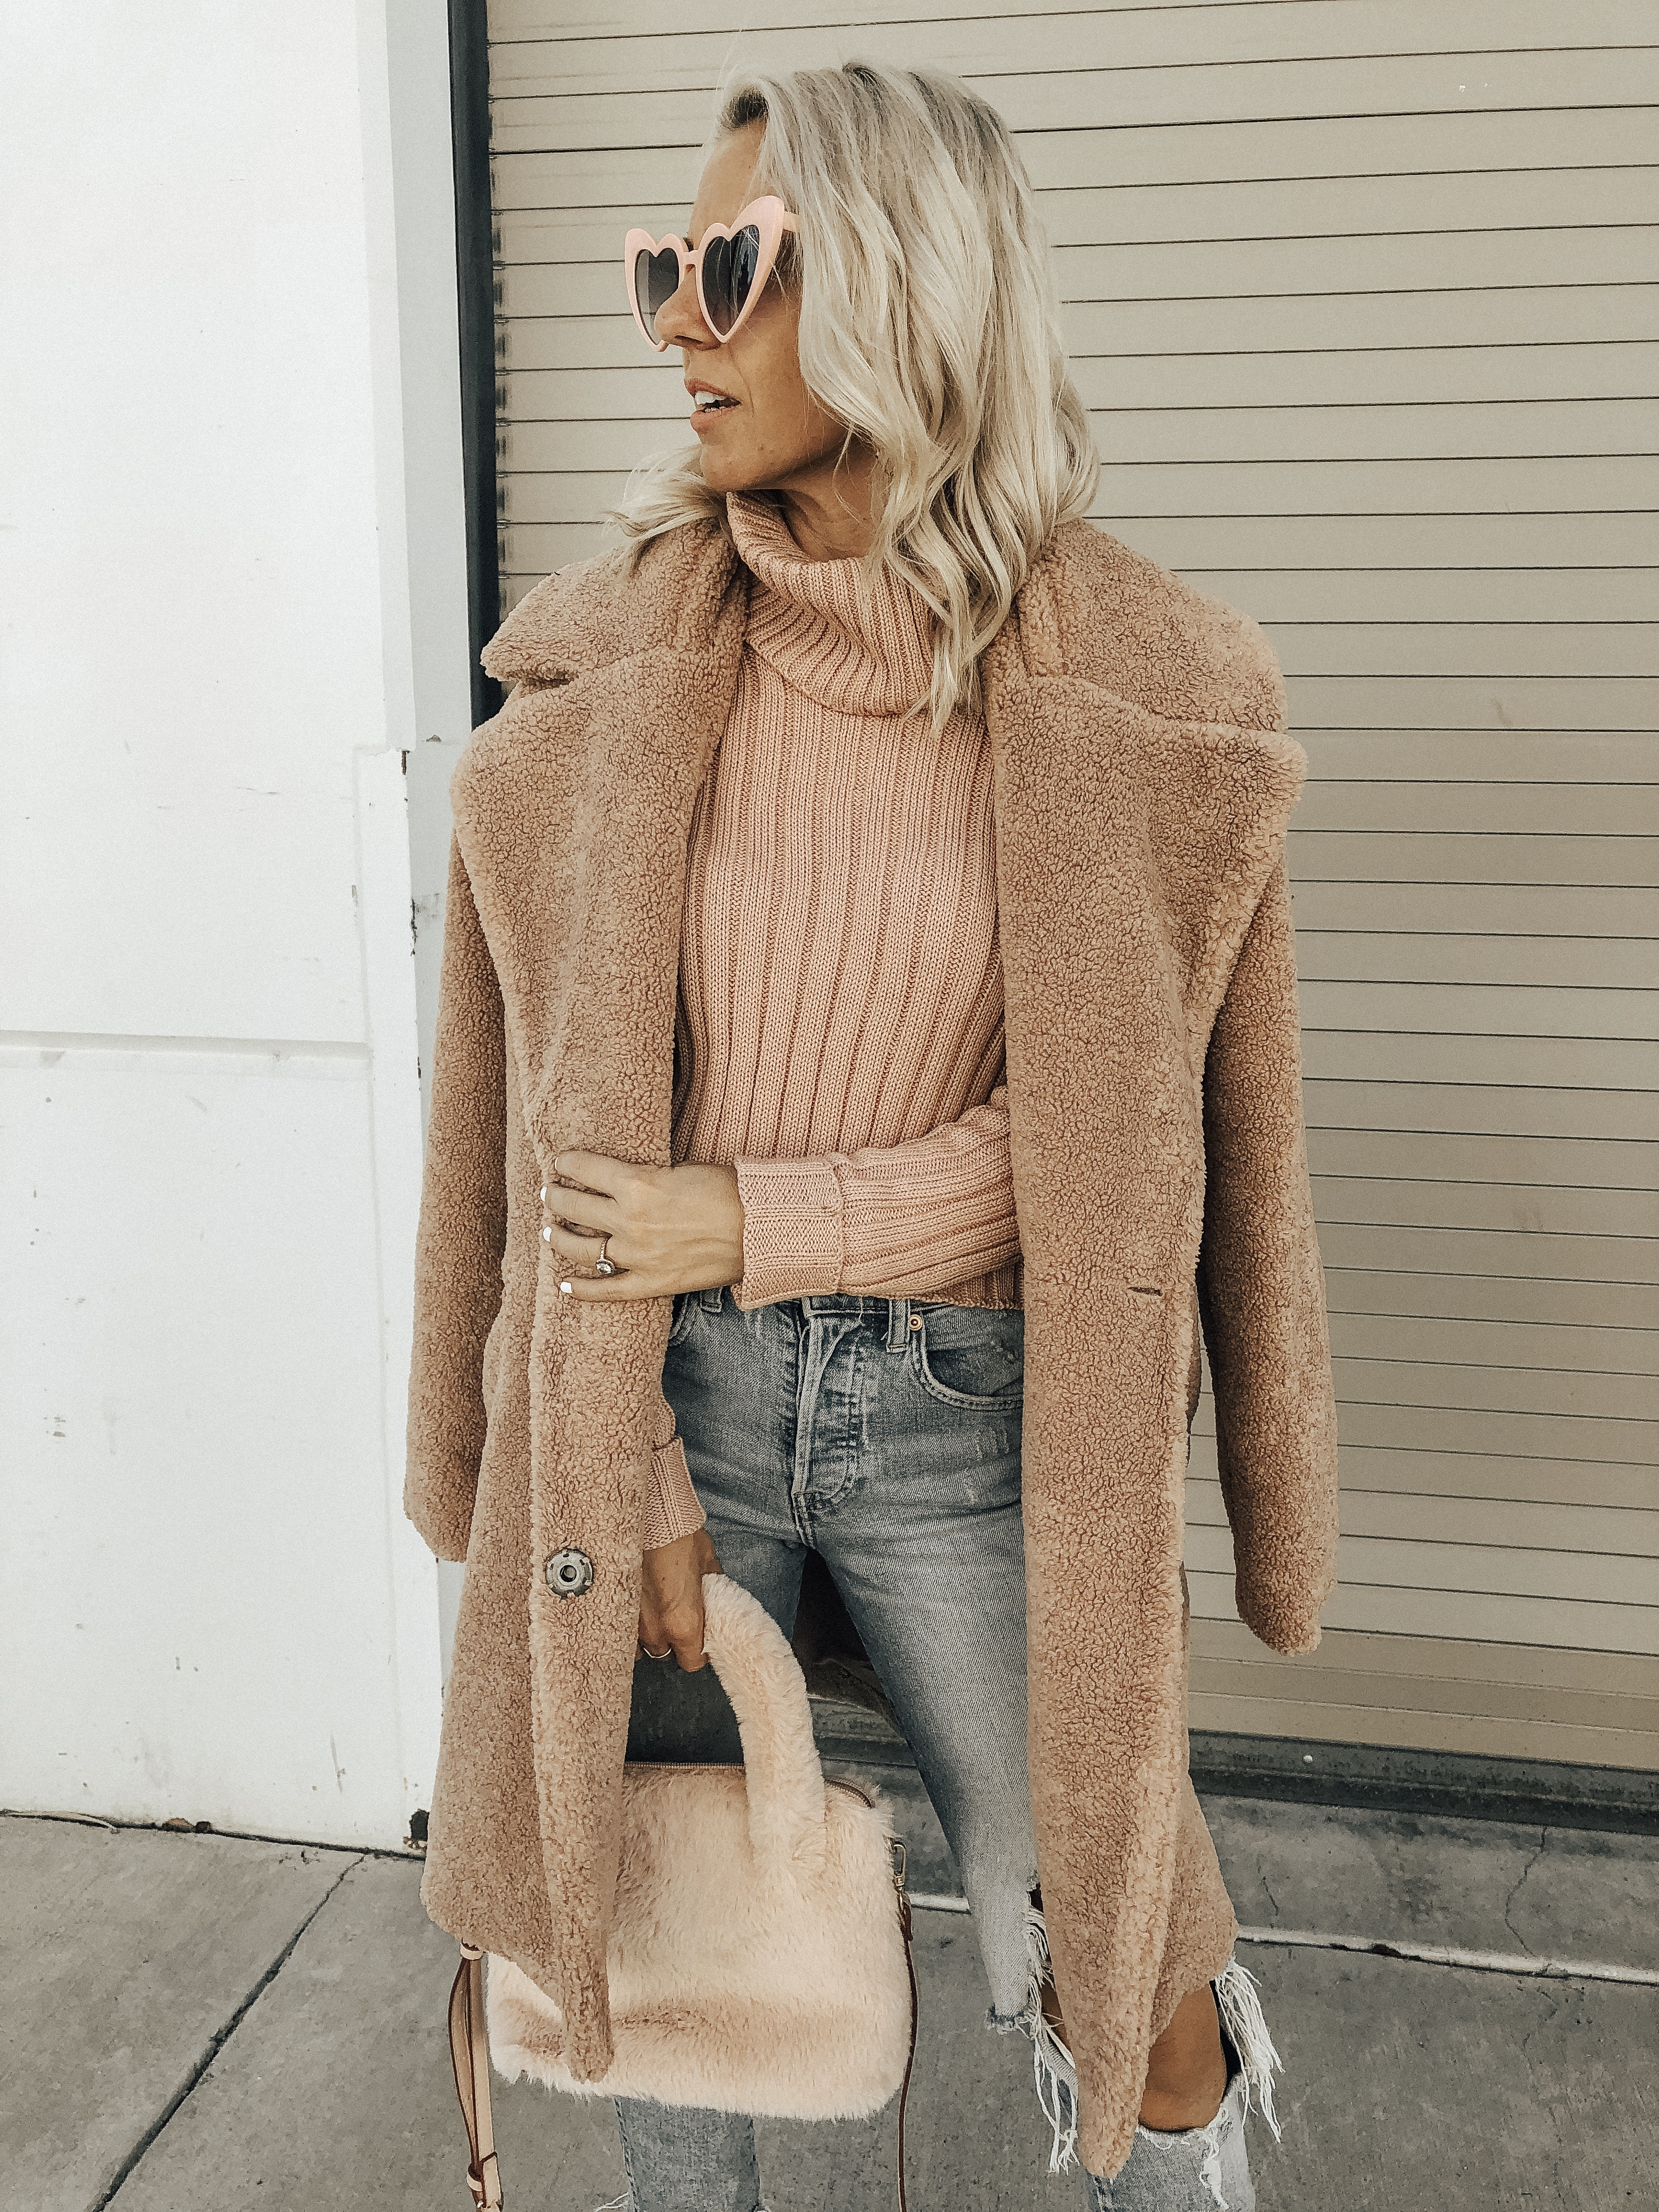 OCTOBER TOP 10- Jaclyn De Leon Style + pink for October + cozy tutleneck sweater + teddy coat + distressed denim + pink faux fur handbag + heart sunglasses + casual style + fall fashion + street style + mom style + what to wear this season + winter outfit